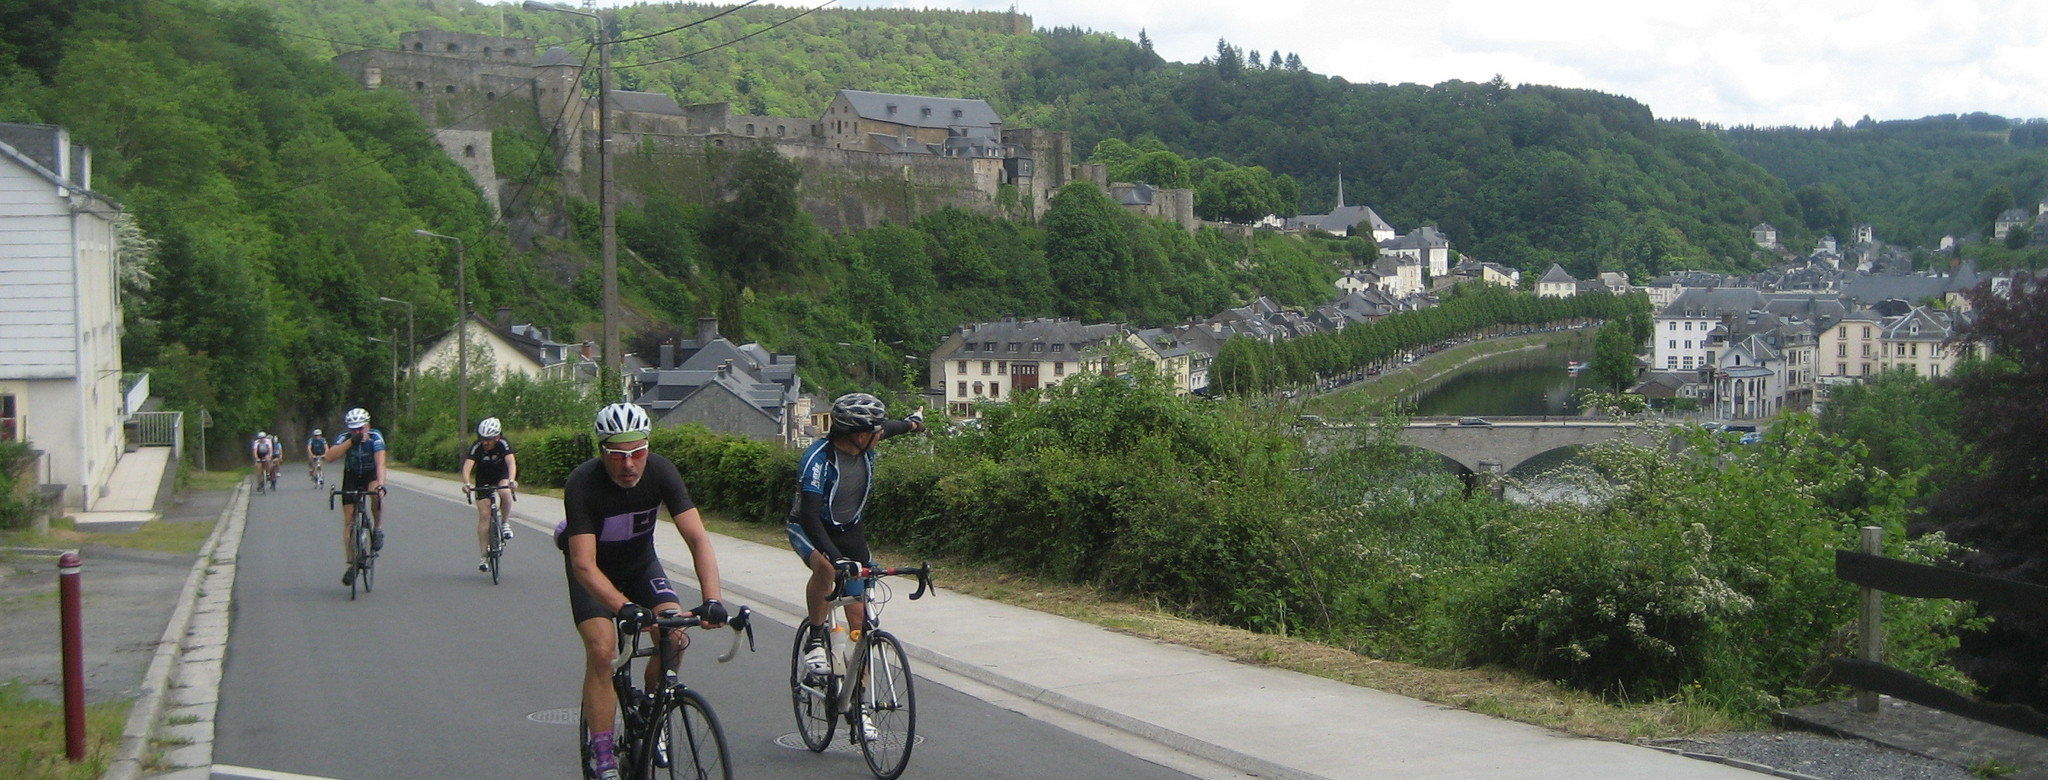 Views over Bouillon with its majestic castle.